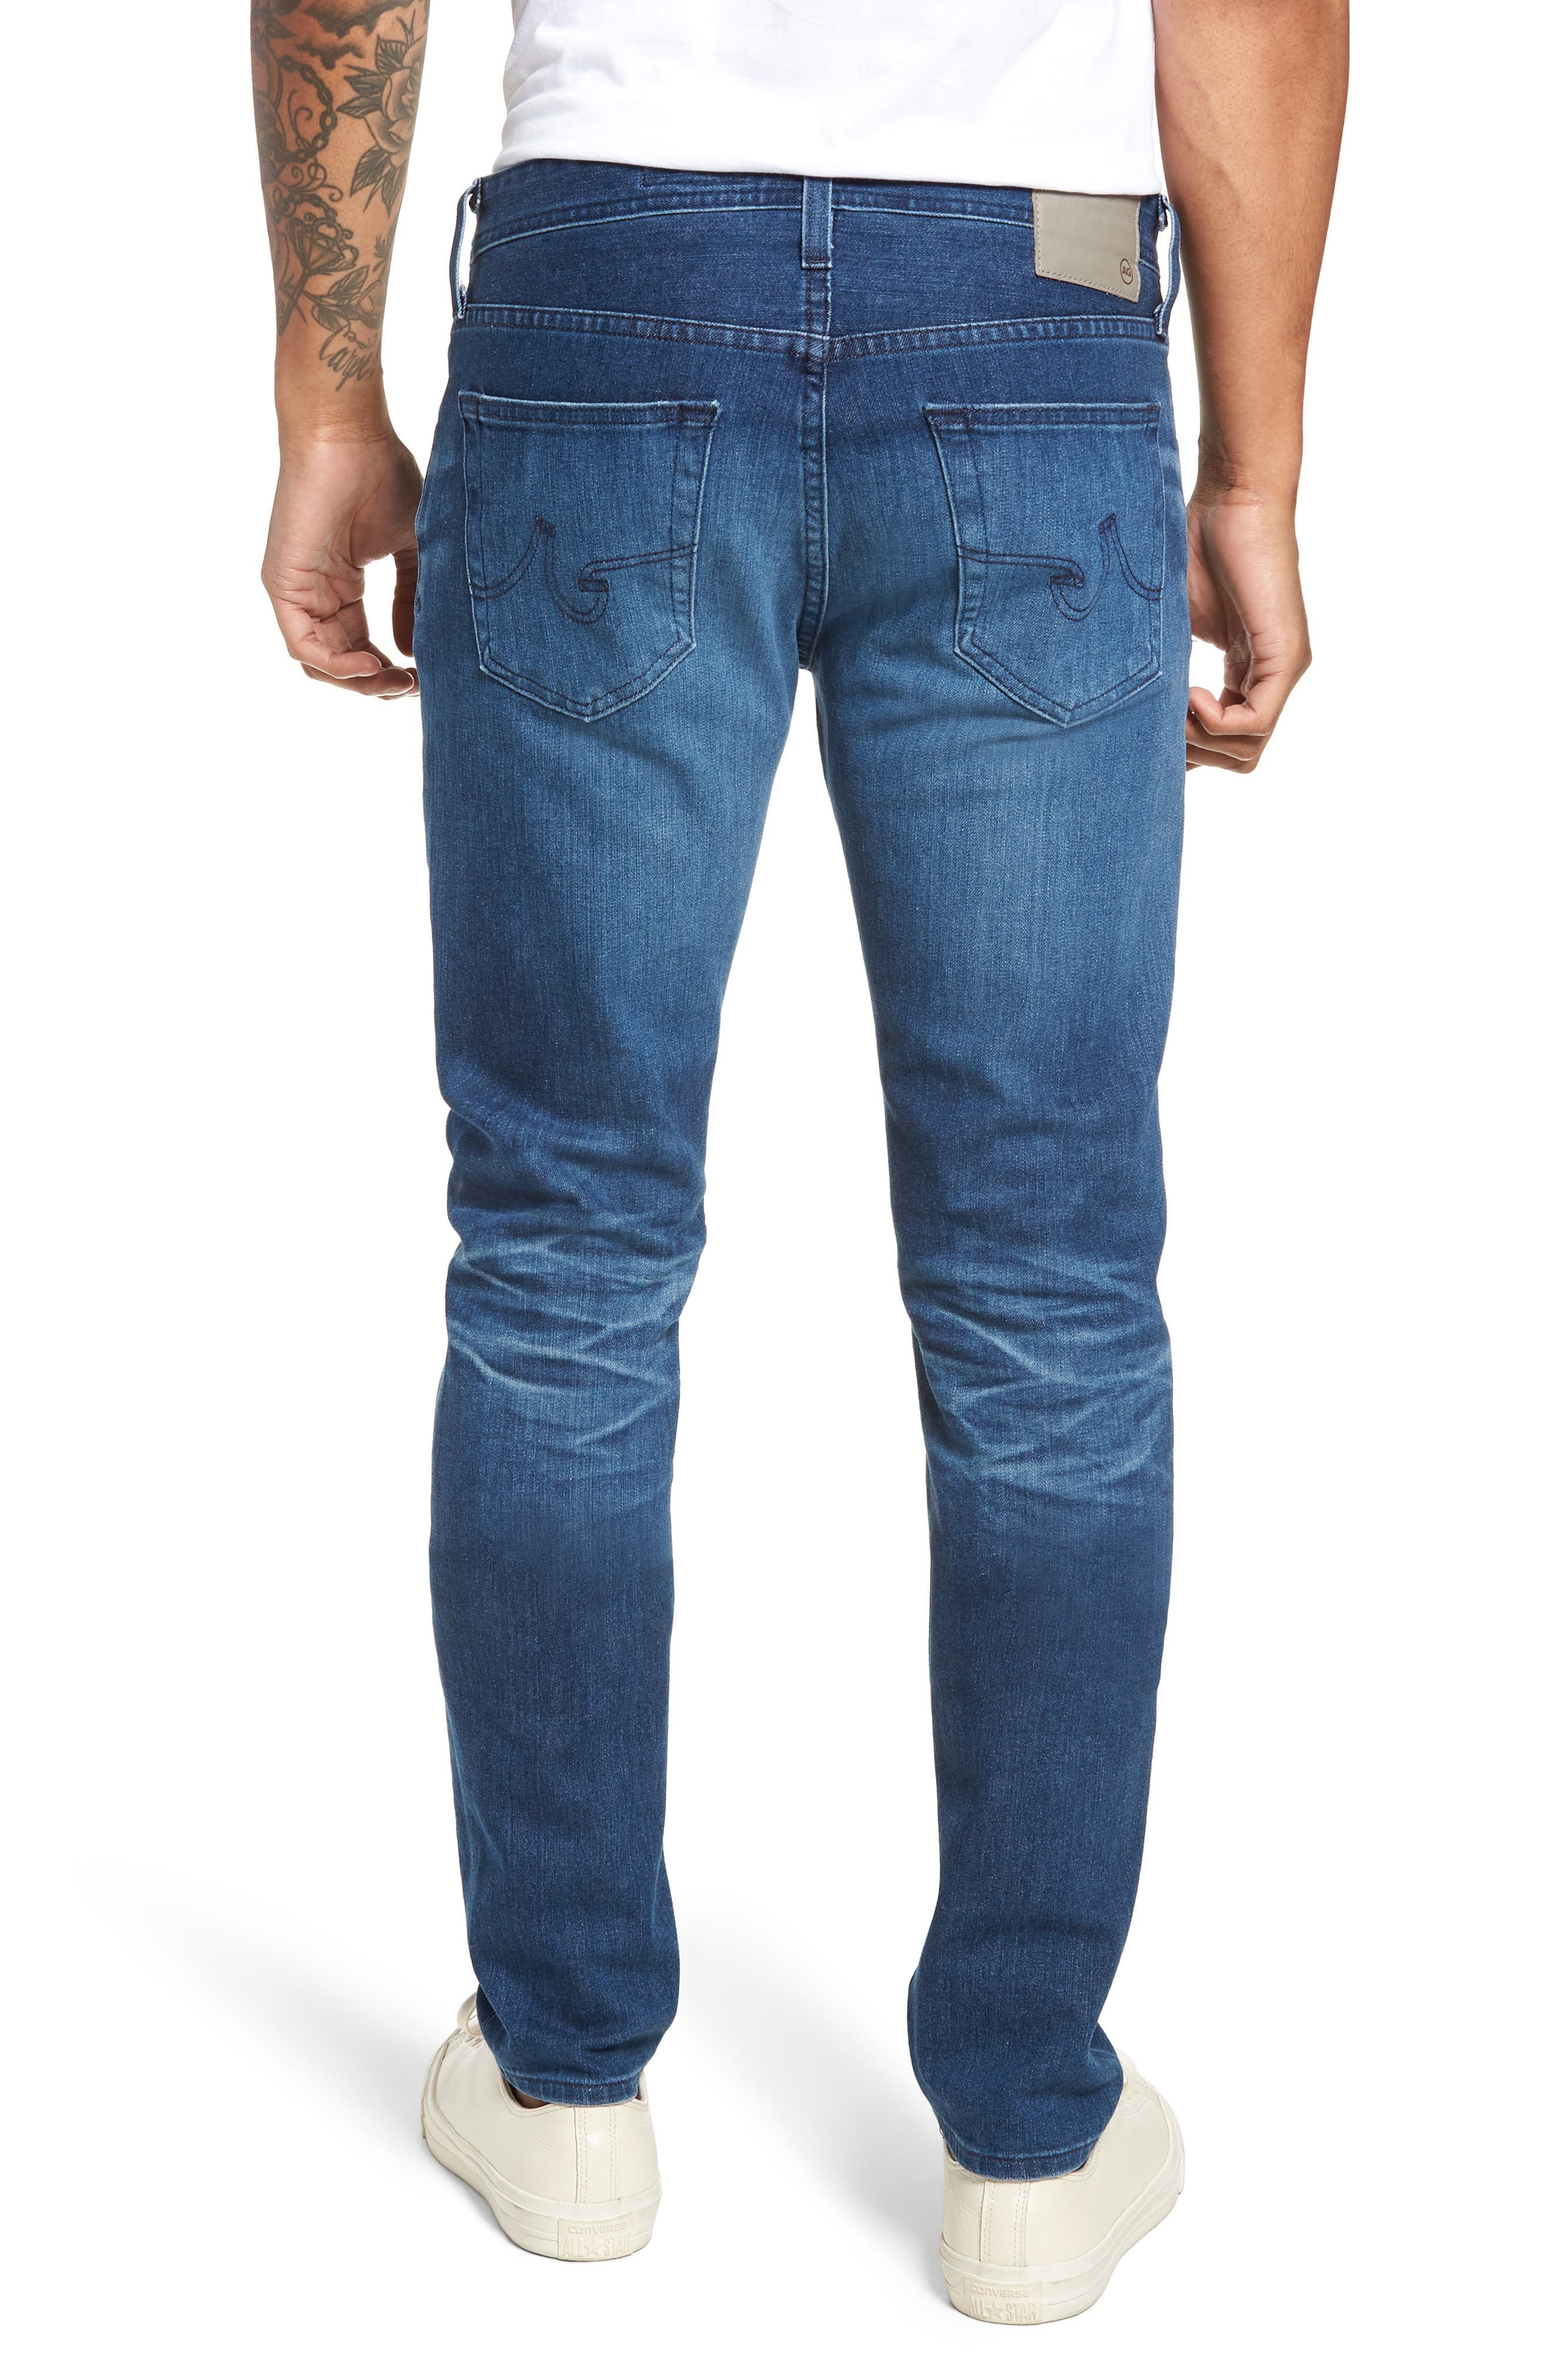 Dylan Skinny Fit Jeans,                             Alternate thumbnail 2, color,                             437